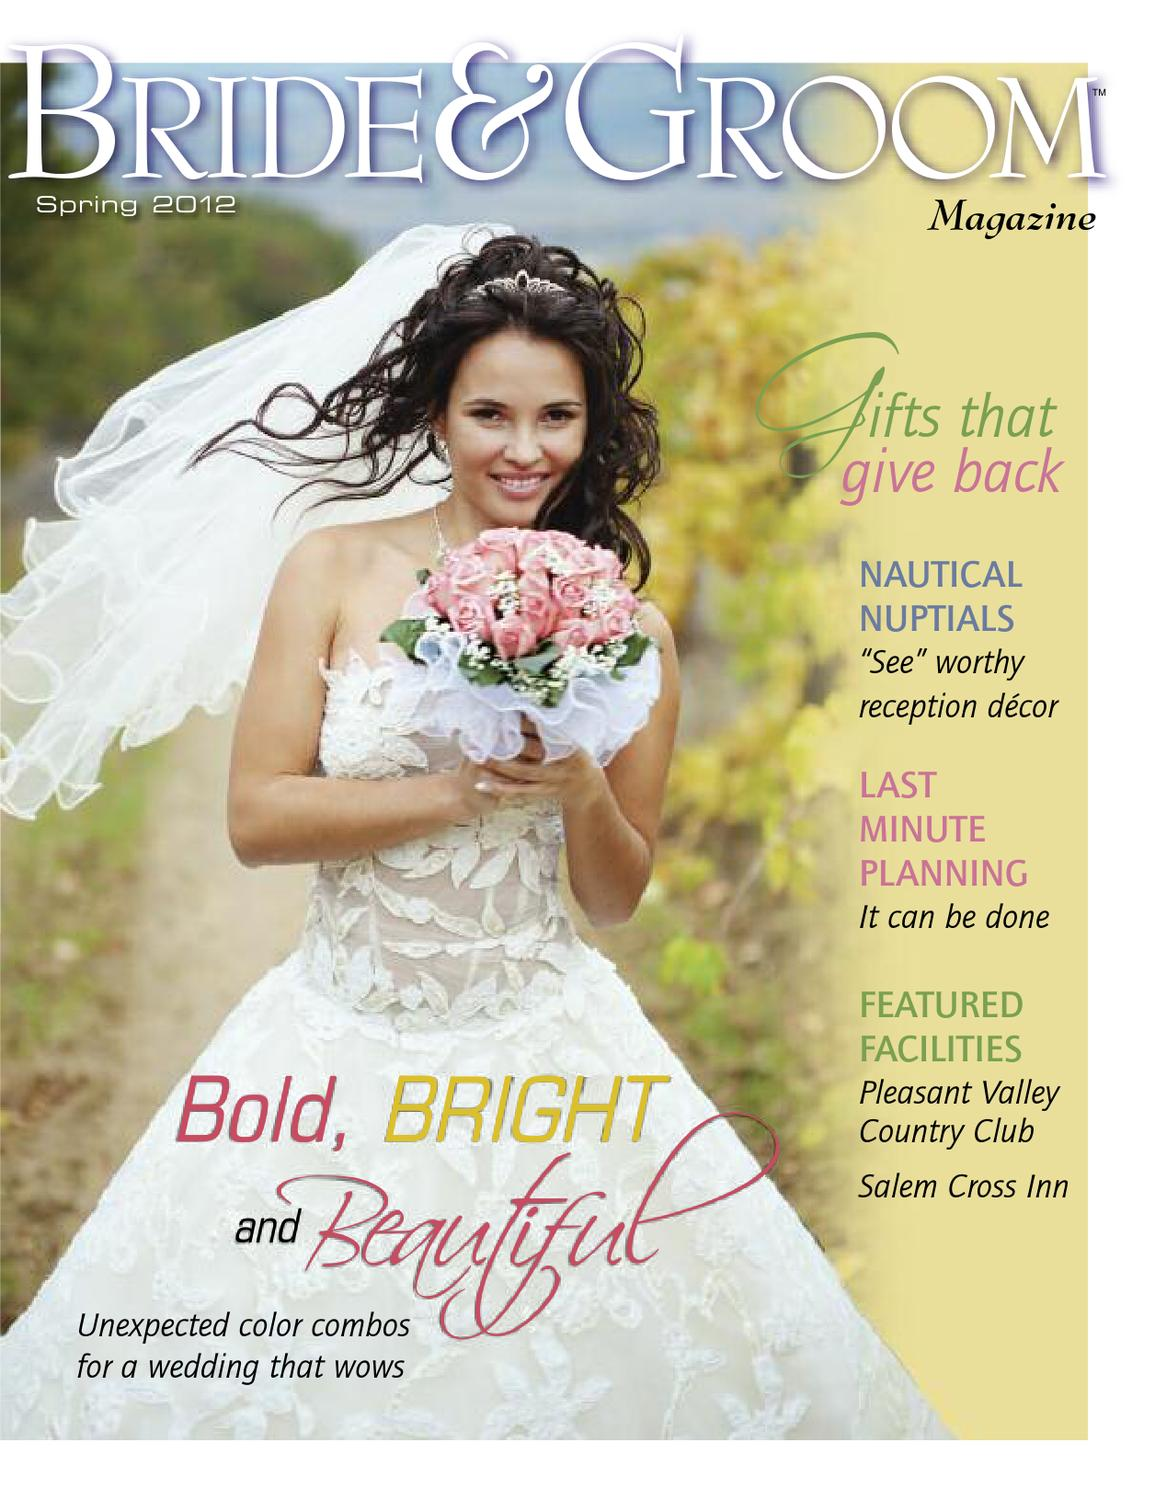 Bride Groom Magazine Spring 2012 By Bride Groom Magazine Issuu